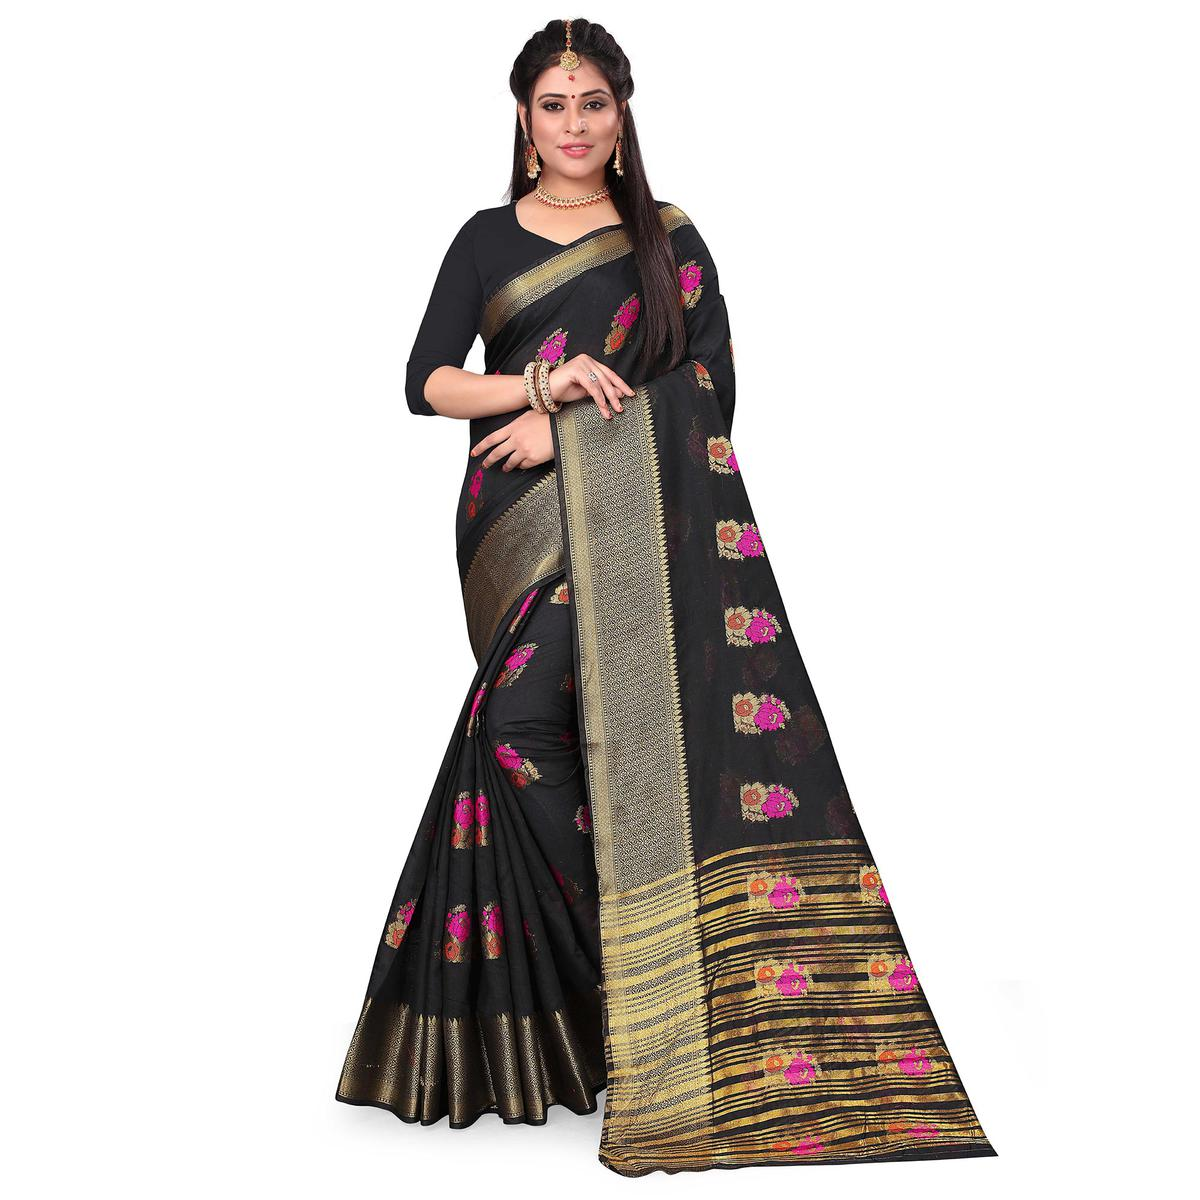 Engrossing Black Colored Festive Wear Woven Cotton Silk Saree